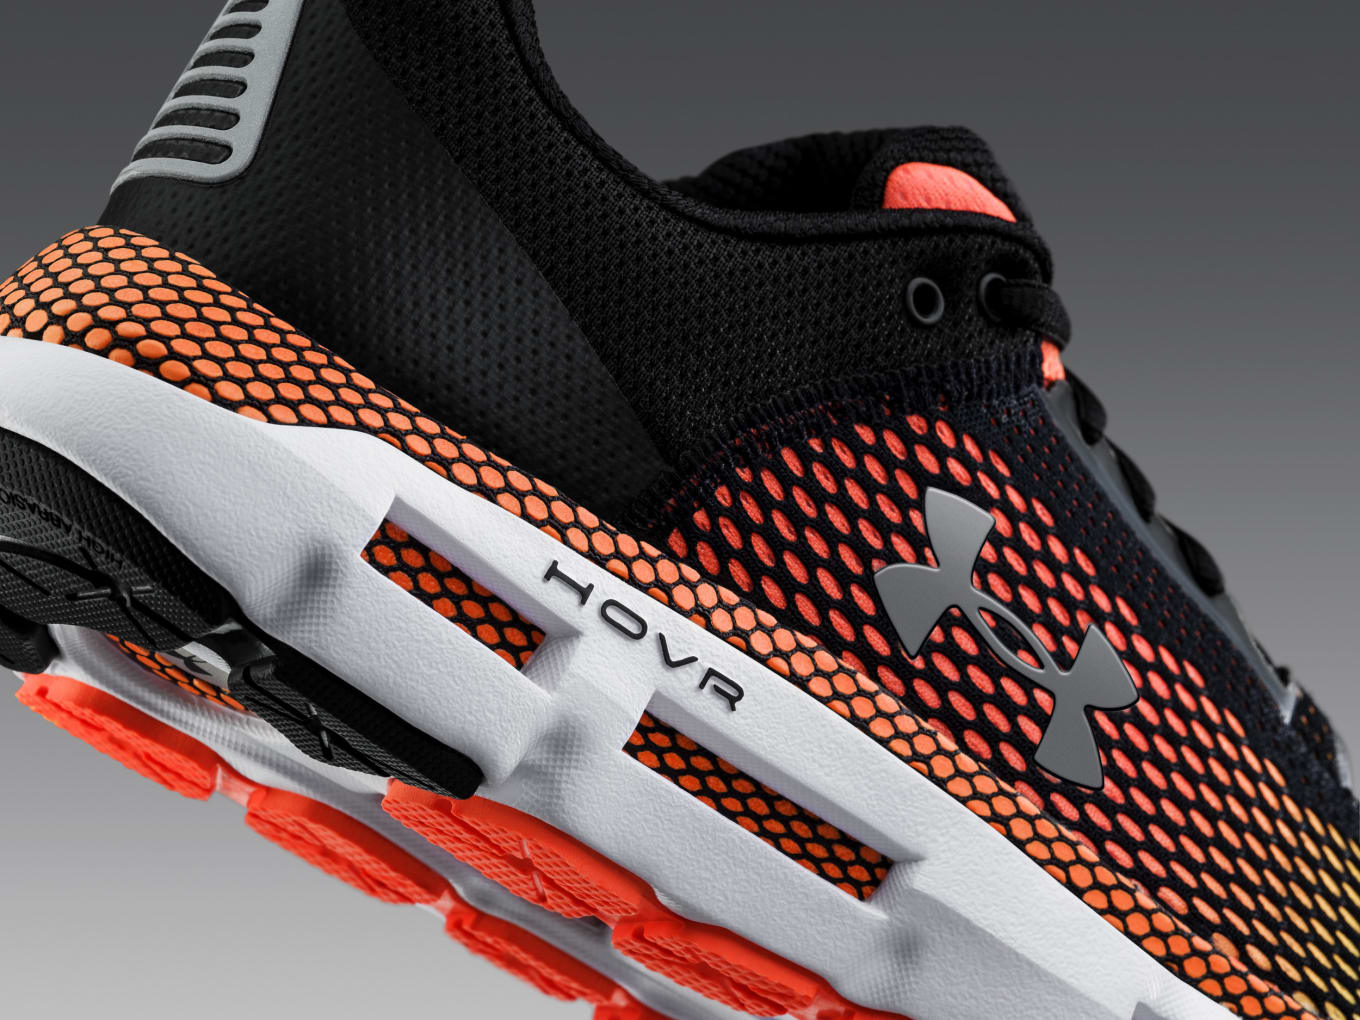 c70190820f6b First Look at Under Armour s New Hovr Infinite Runner